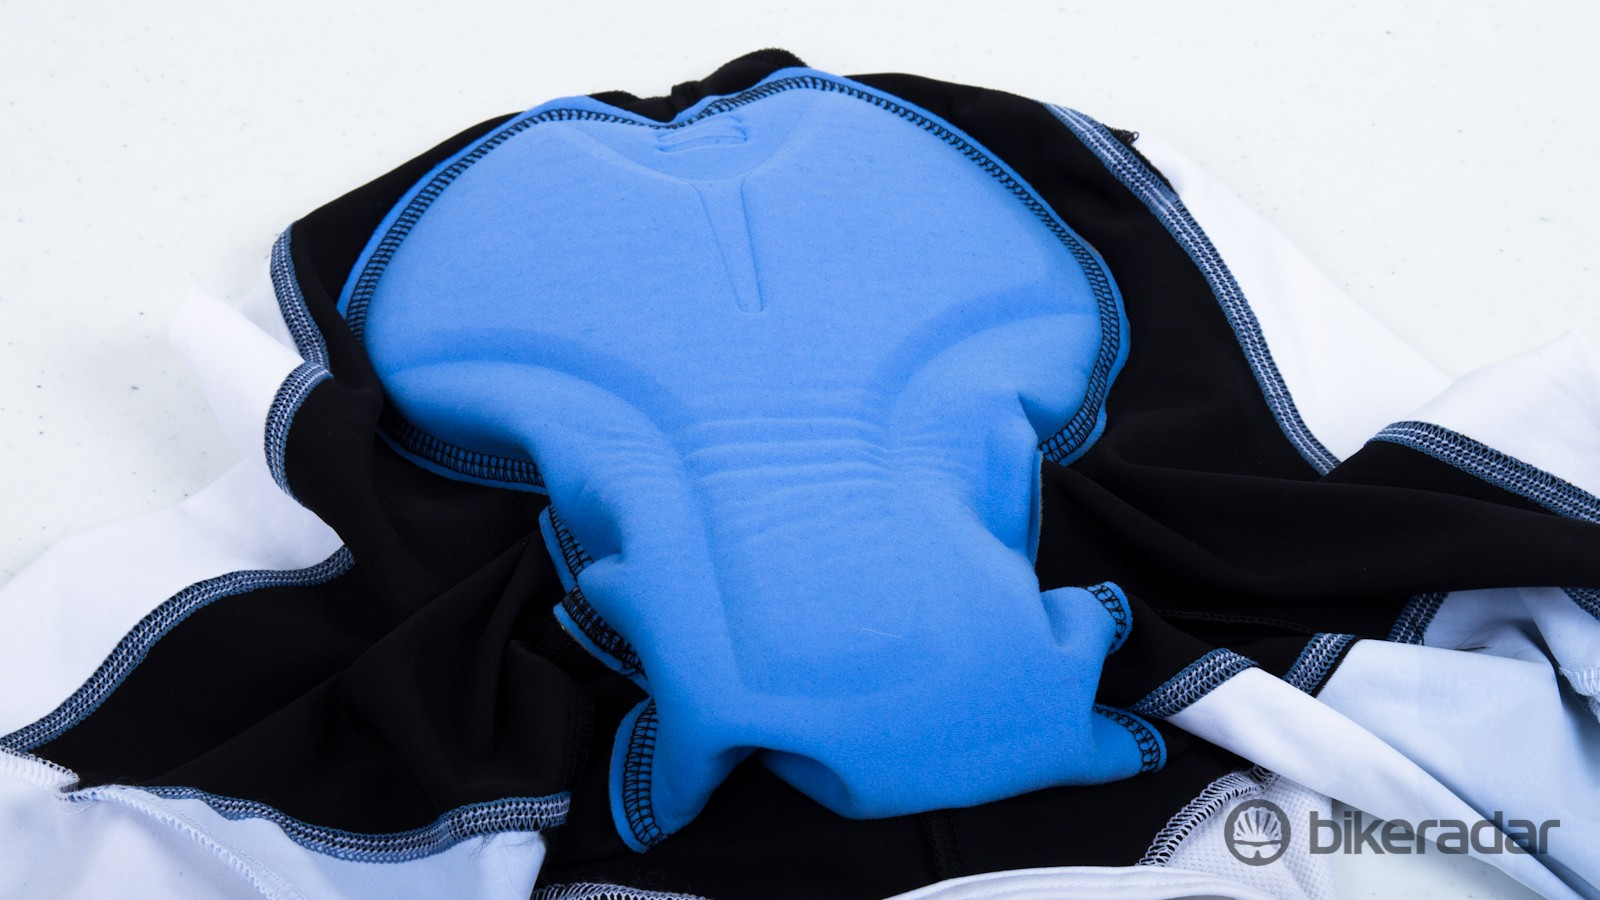 A look at the chamois in the BodyFit bibs